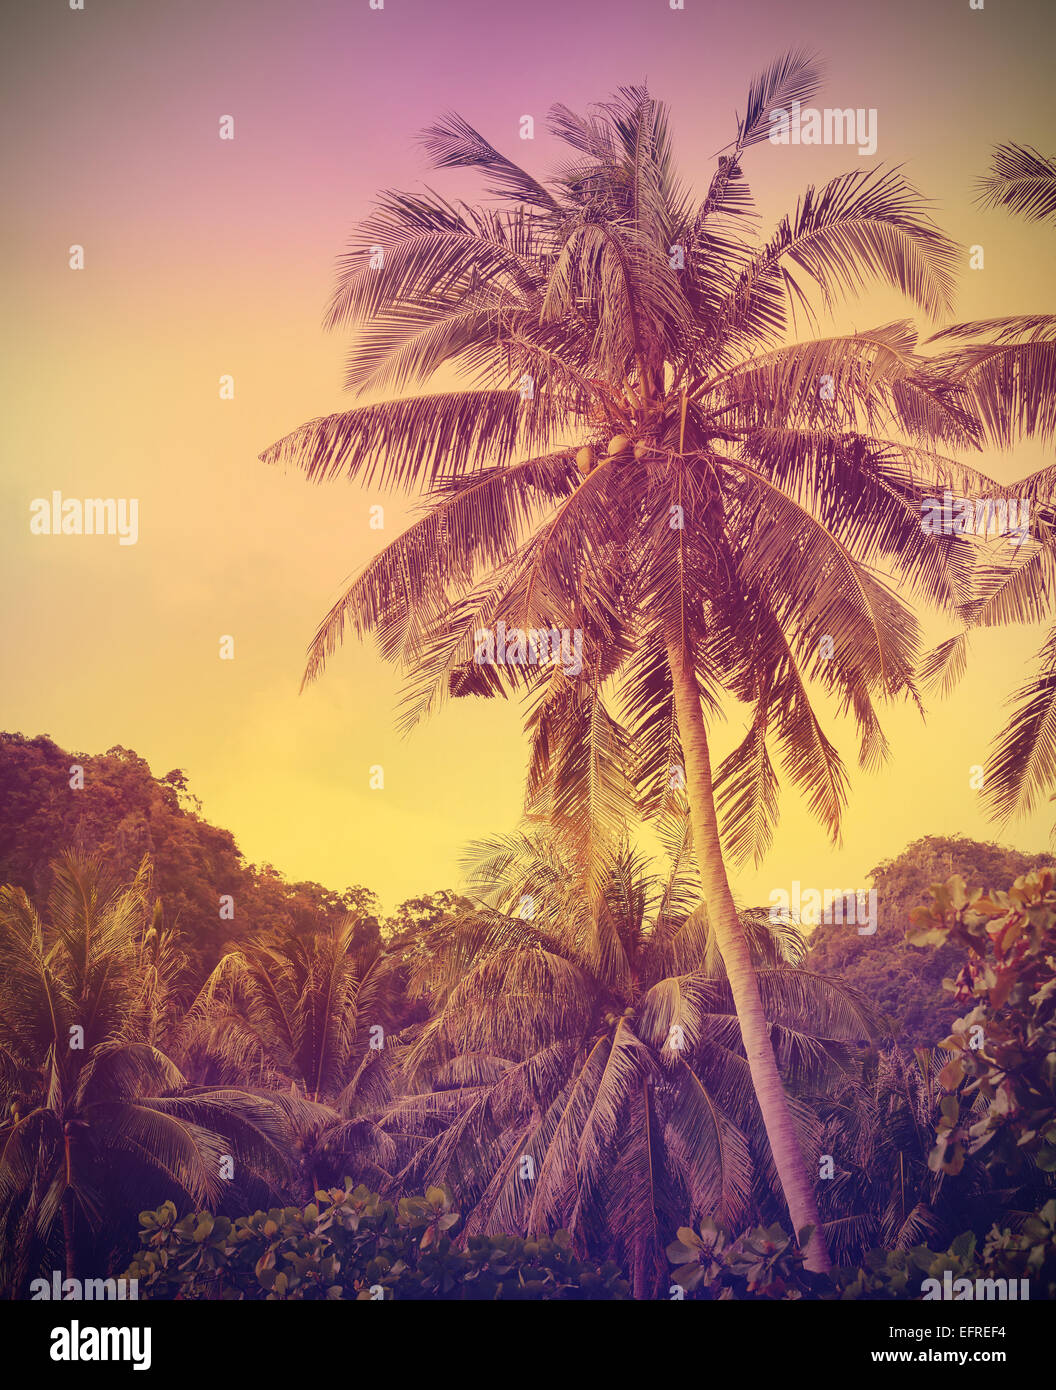 Vintage faded nature background, palms at sunset. - Stock Image